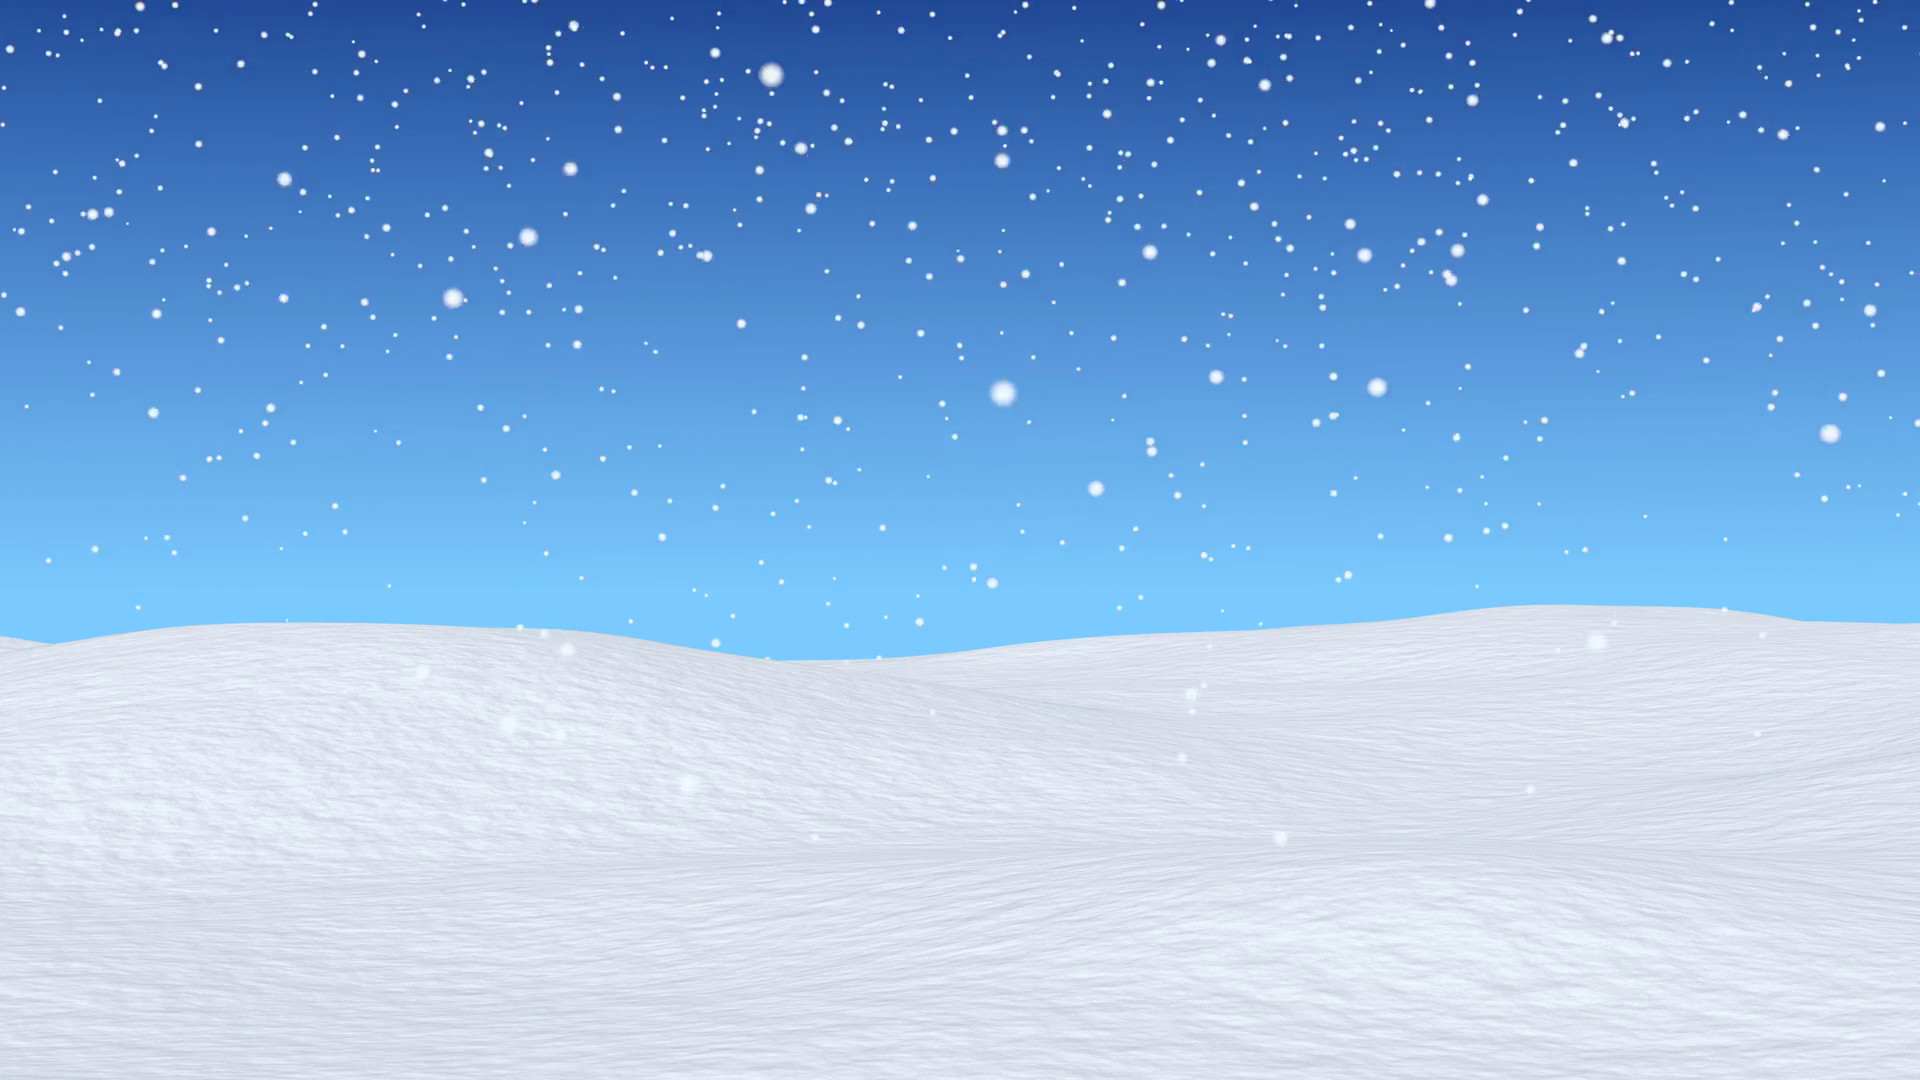 Snow Falling Wallpaper For Ipad Snowy Background 50 Pictures